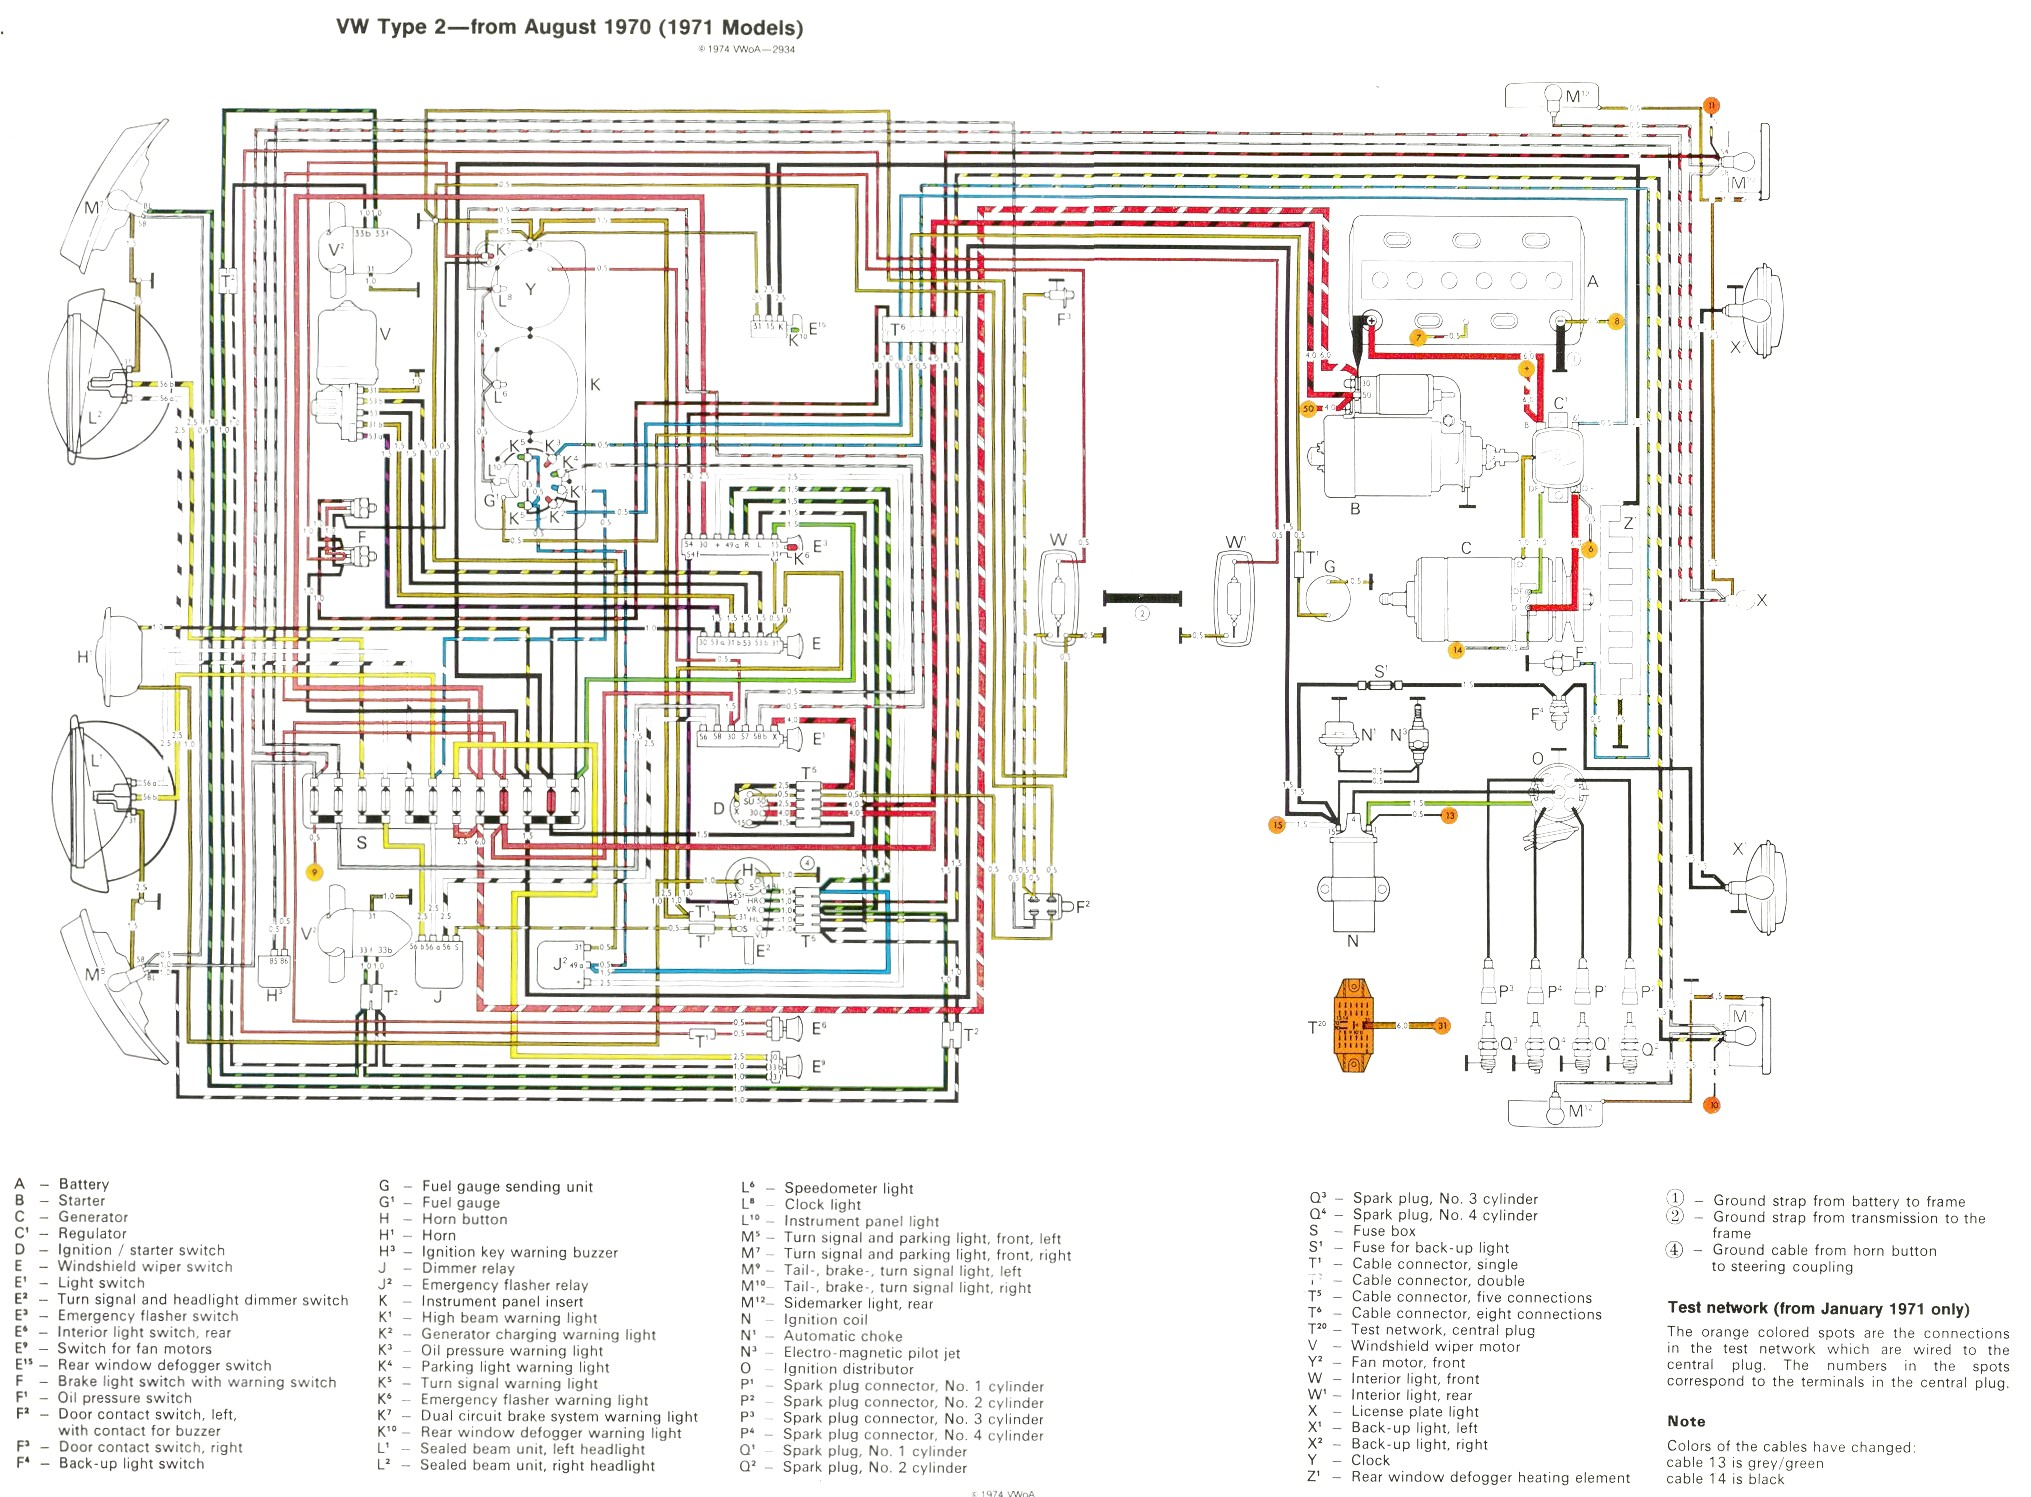 bus 70 71 baywindow fusebox layout vw transporter fuse box layout 2014 at crackthecode.co